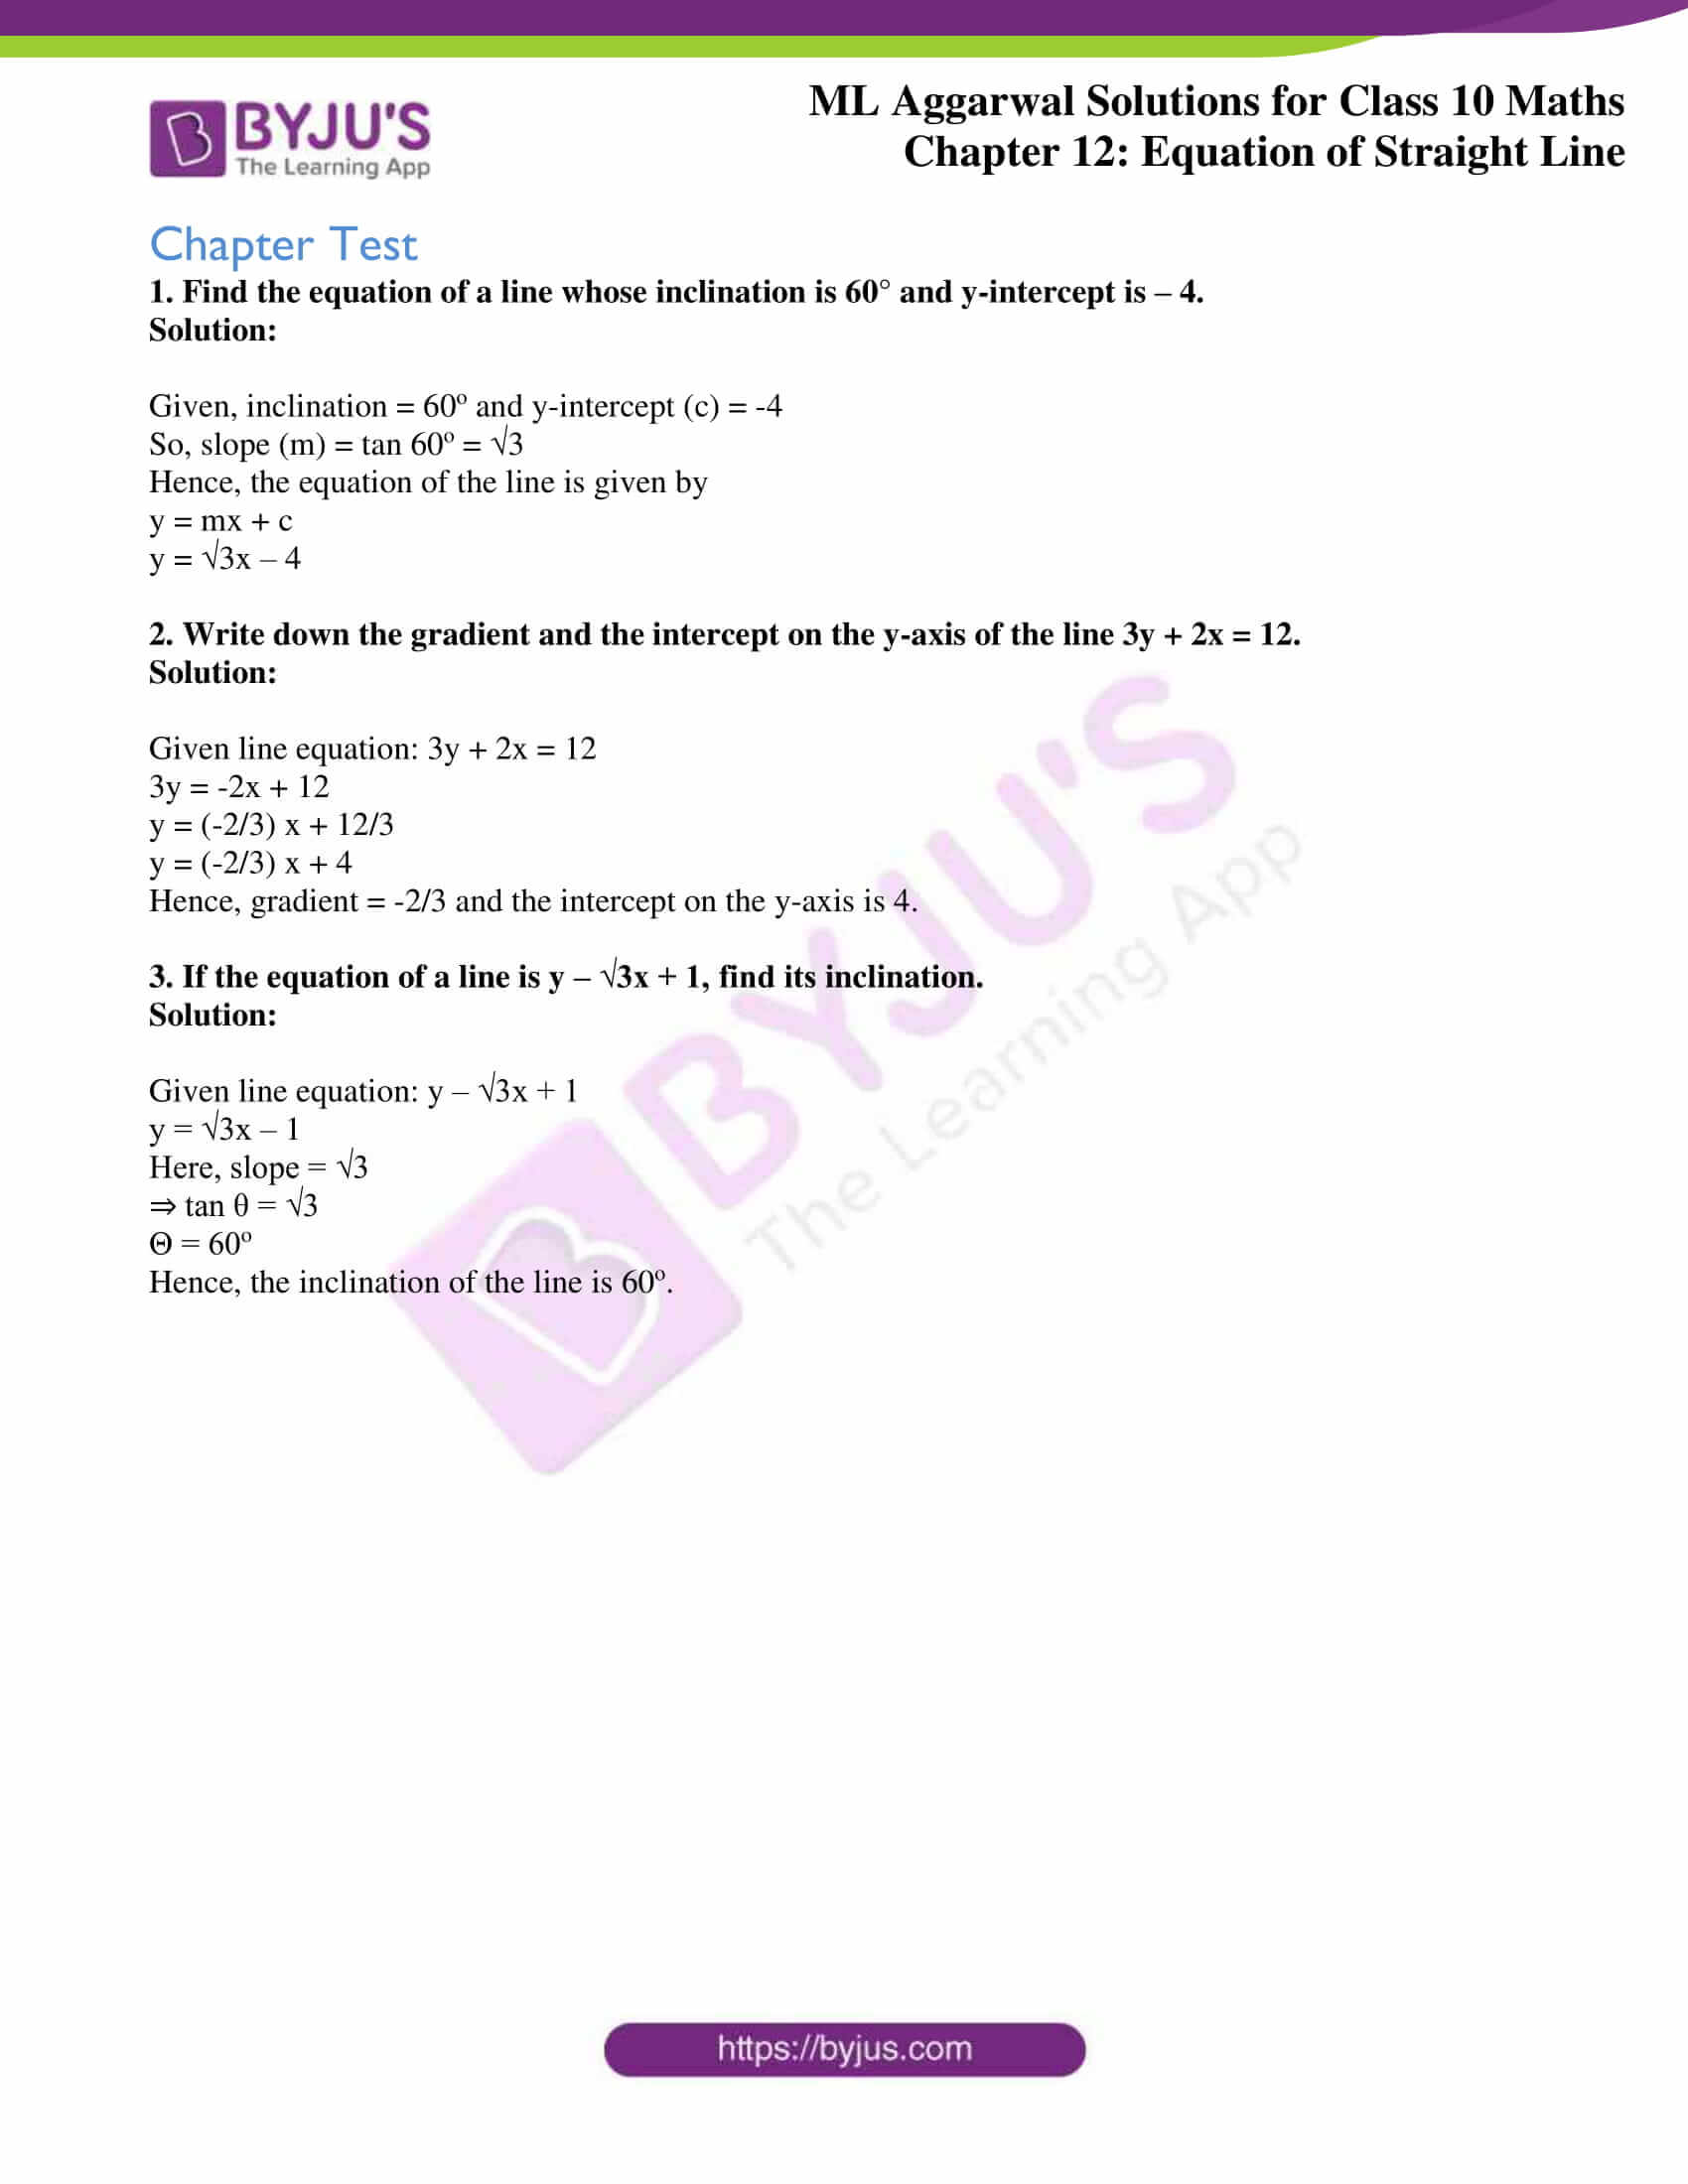 ml aggarwal solutions for class 10 maths chapter 12 36